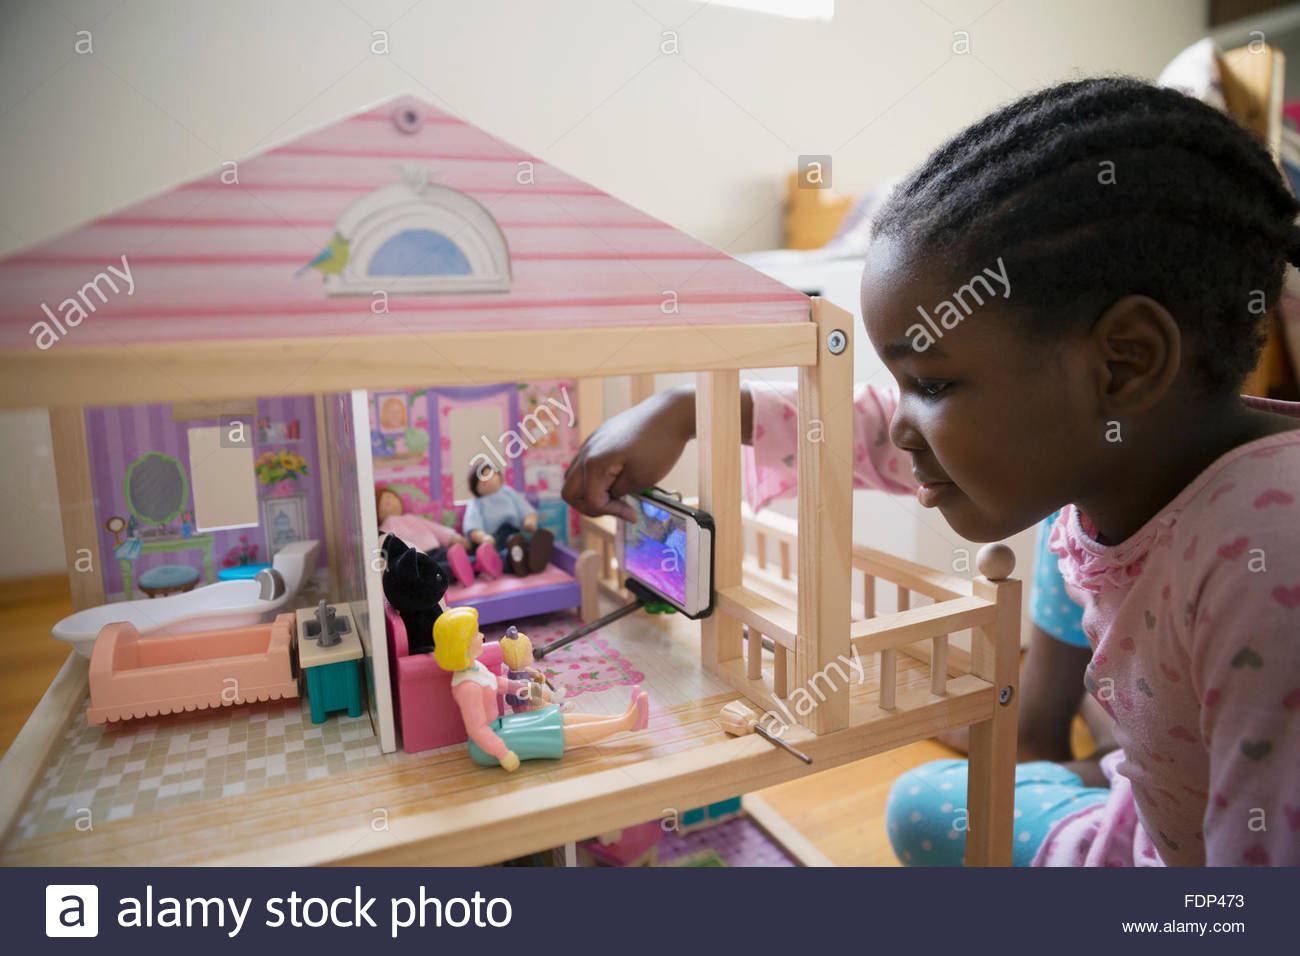 Girl photographing dolls in dollhouse - Stock Image